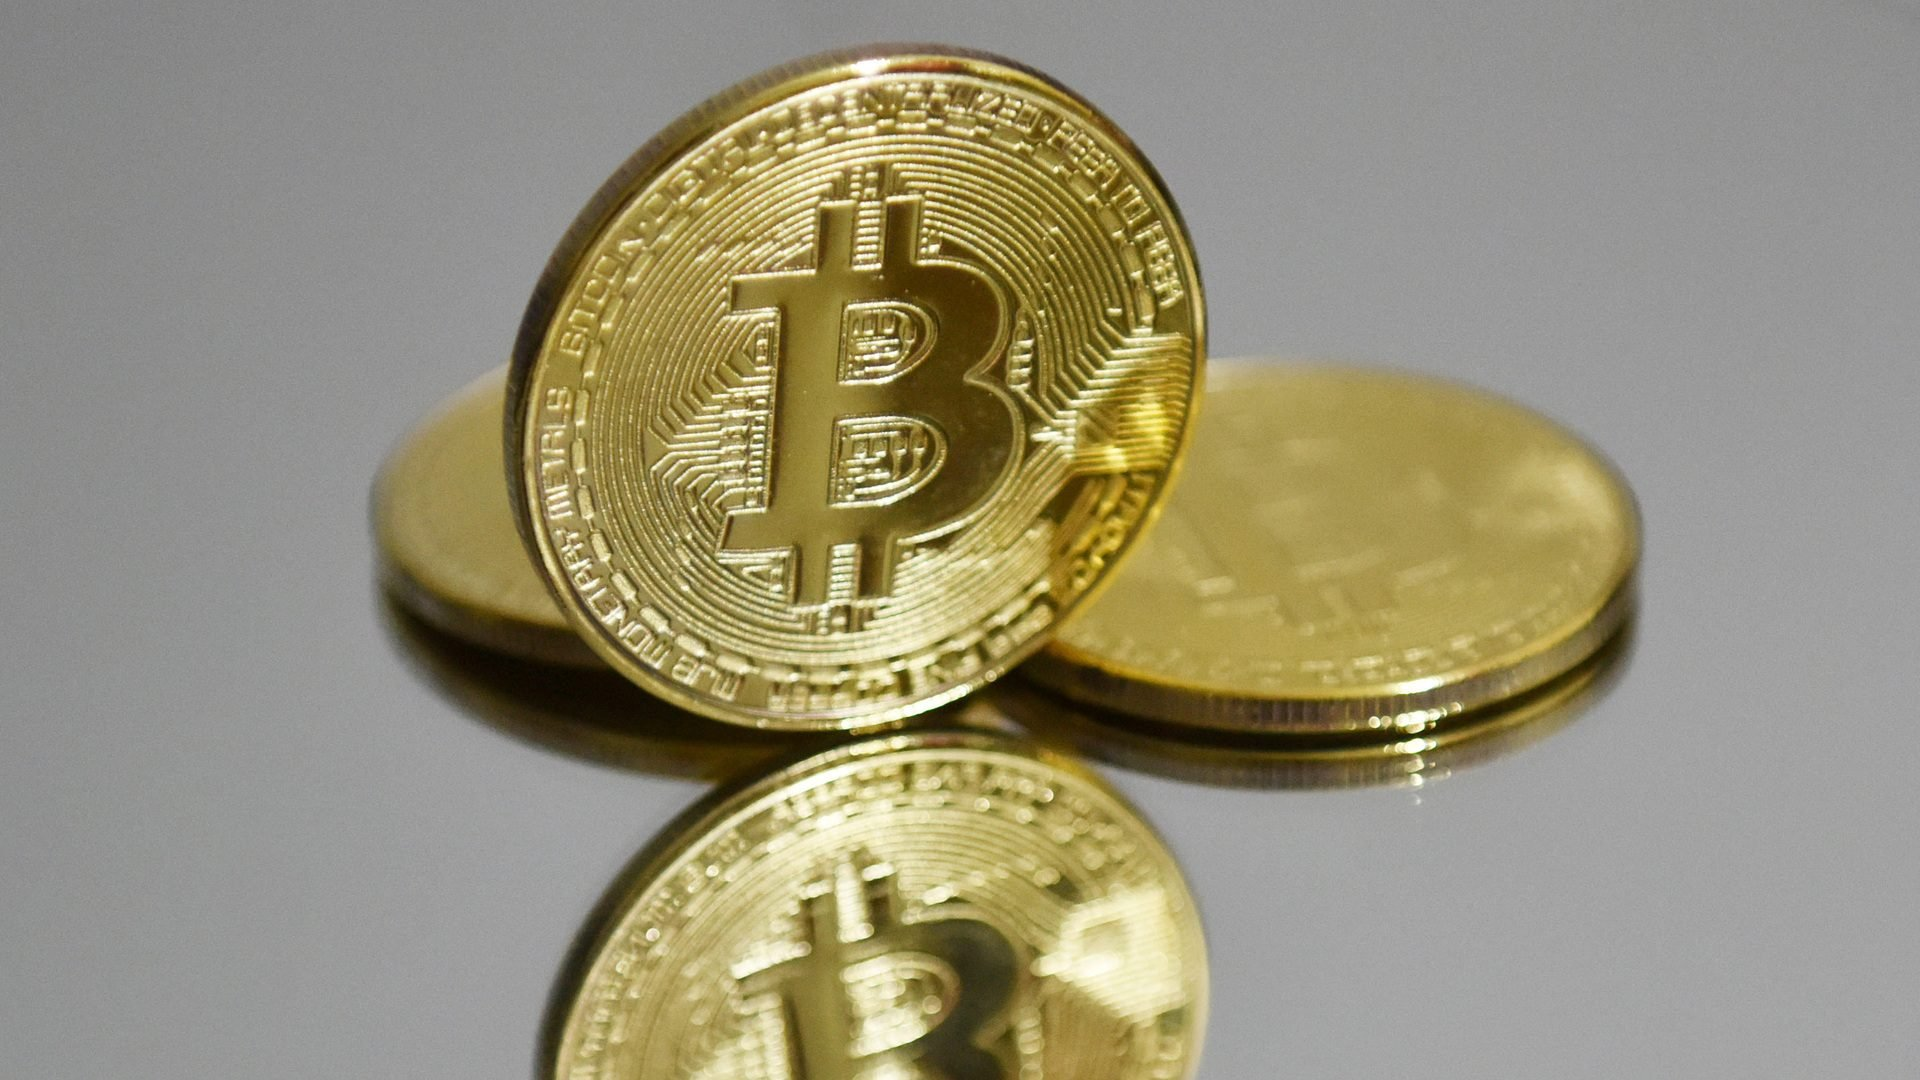 Will Bitcoin Ever Run Out?